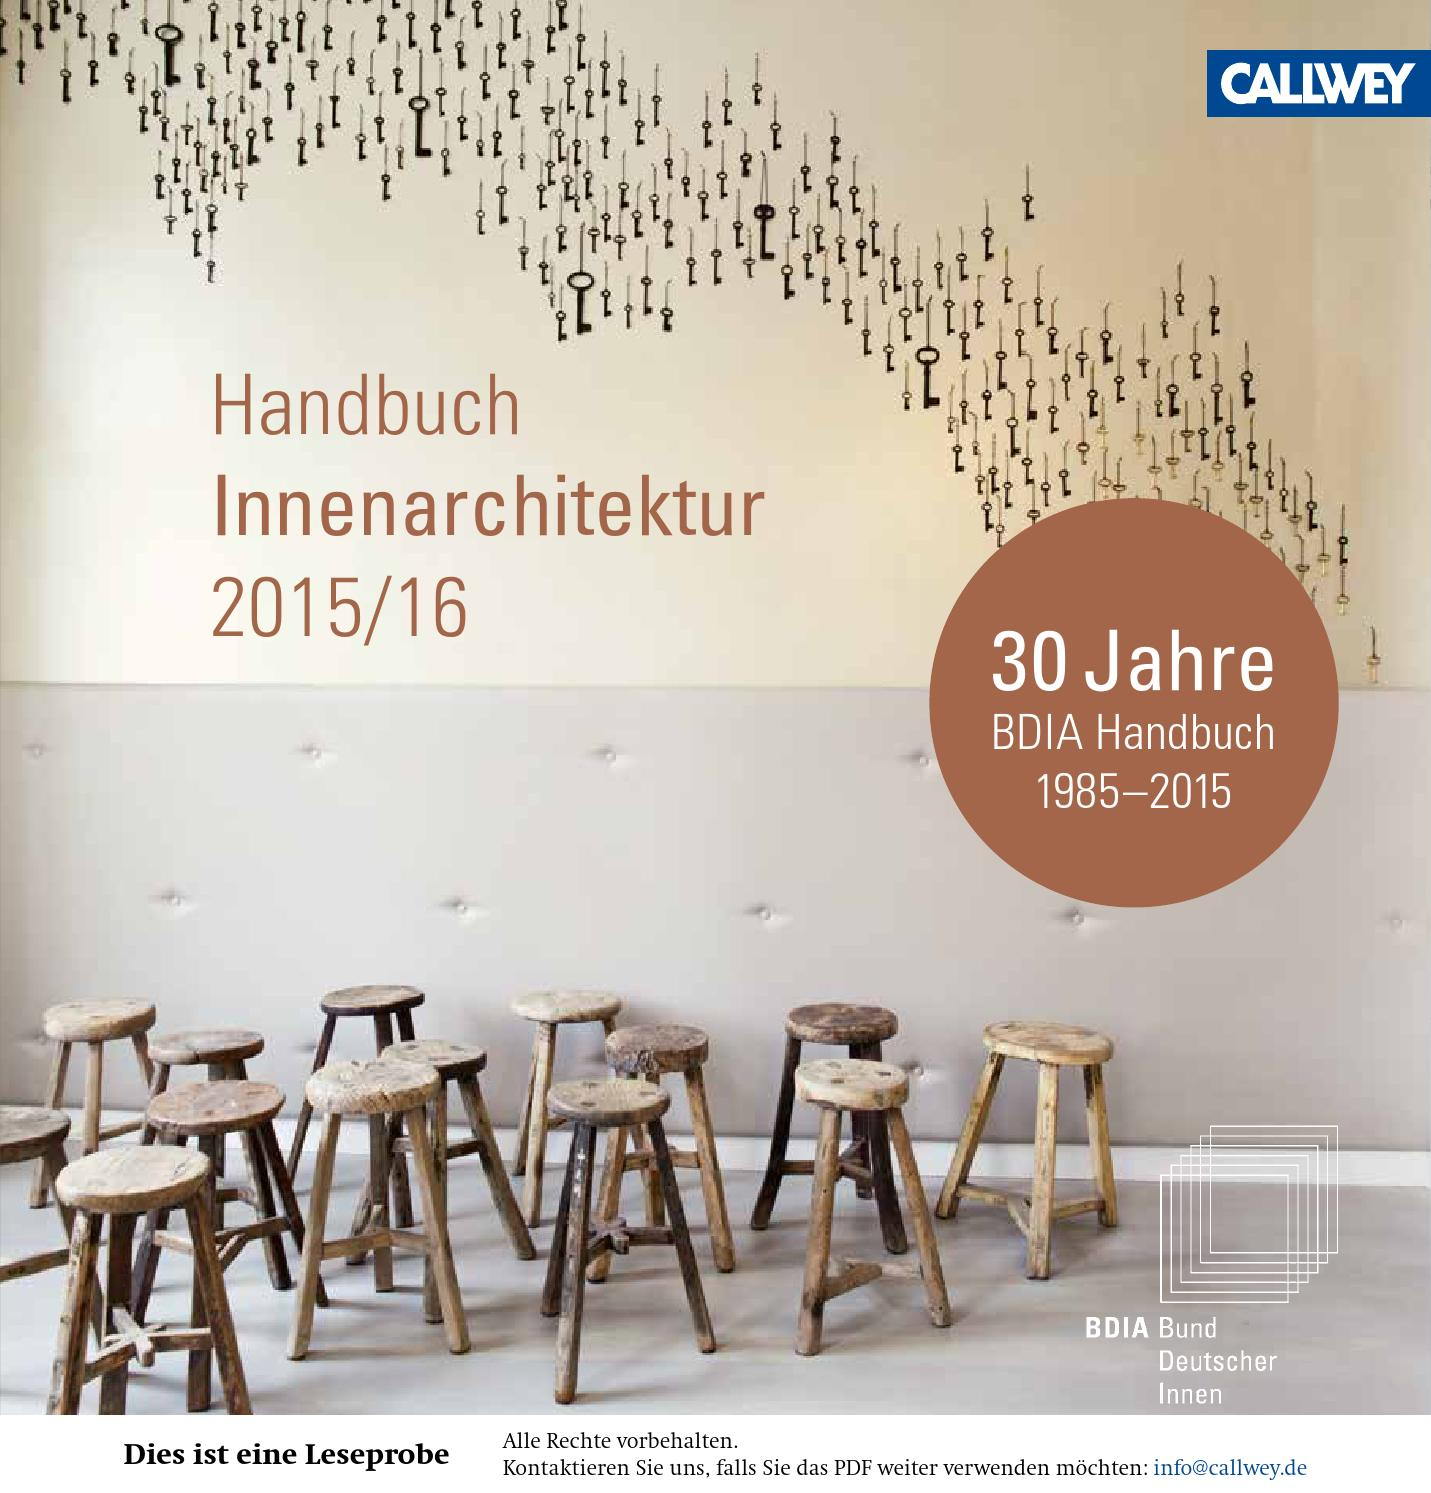 bdia handbuch innenarchitektur 2015 16 by georg d w callwey gmbh co kg issuu. Black Bedroom Furniture Sets. Home Design Ideas